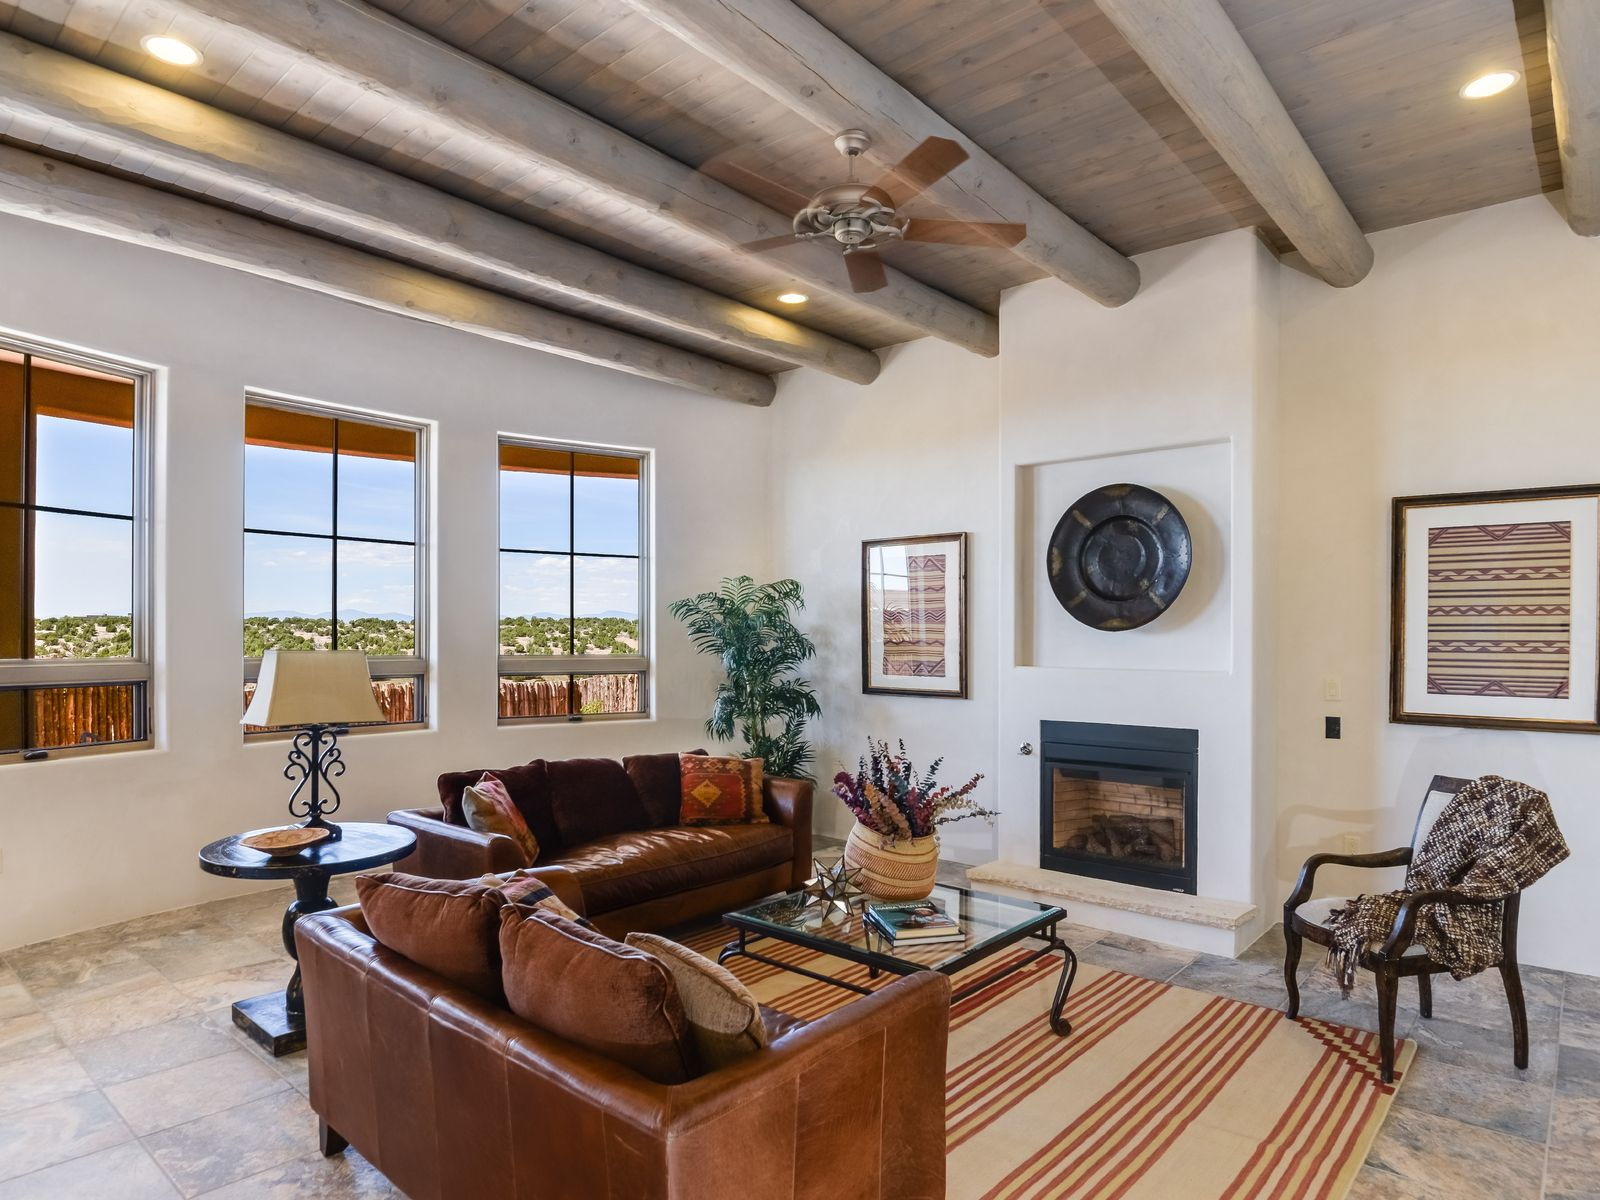 1 Camino Barranca, Santa Fe NM Single Family Home - Santa Fe Real Estate